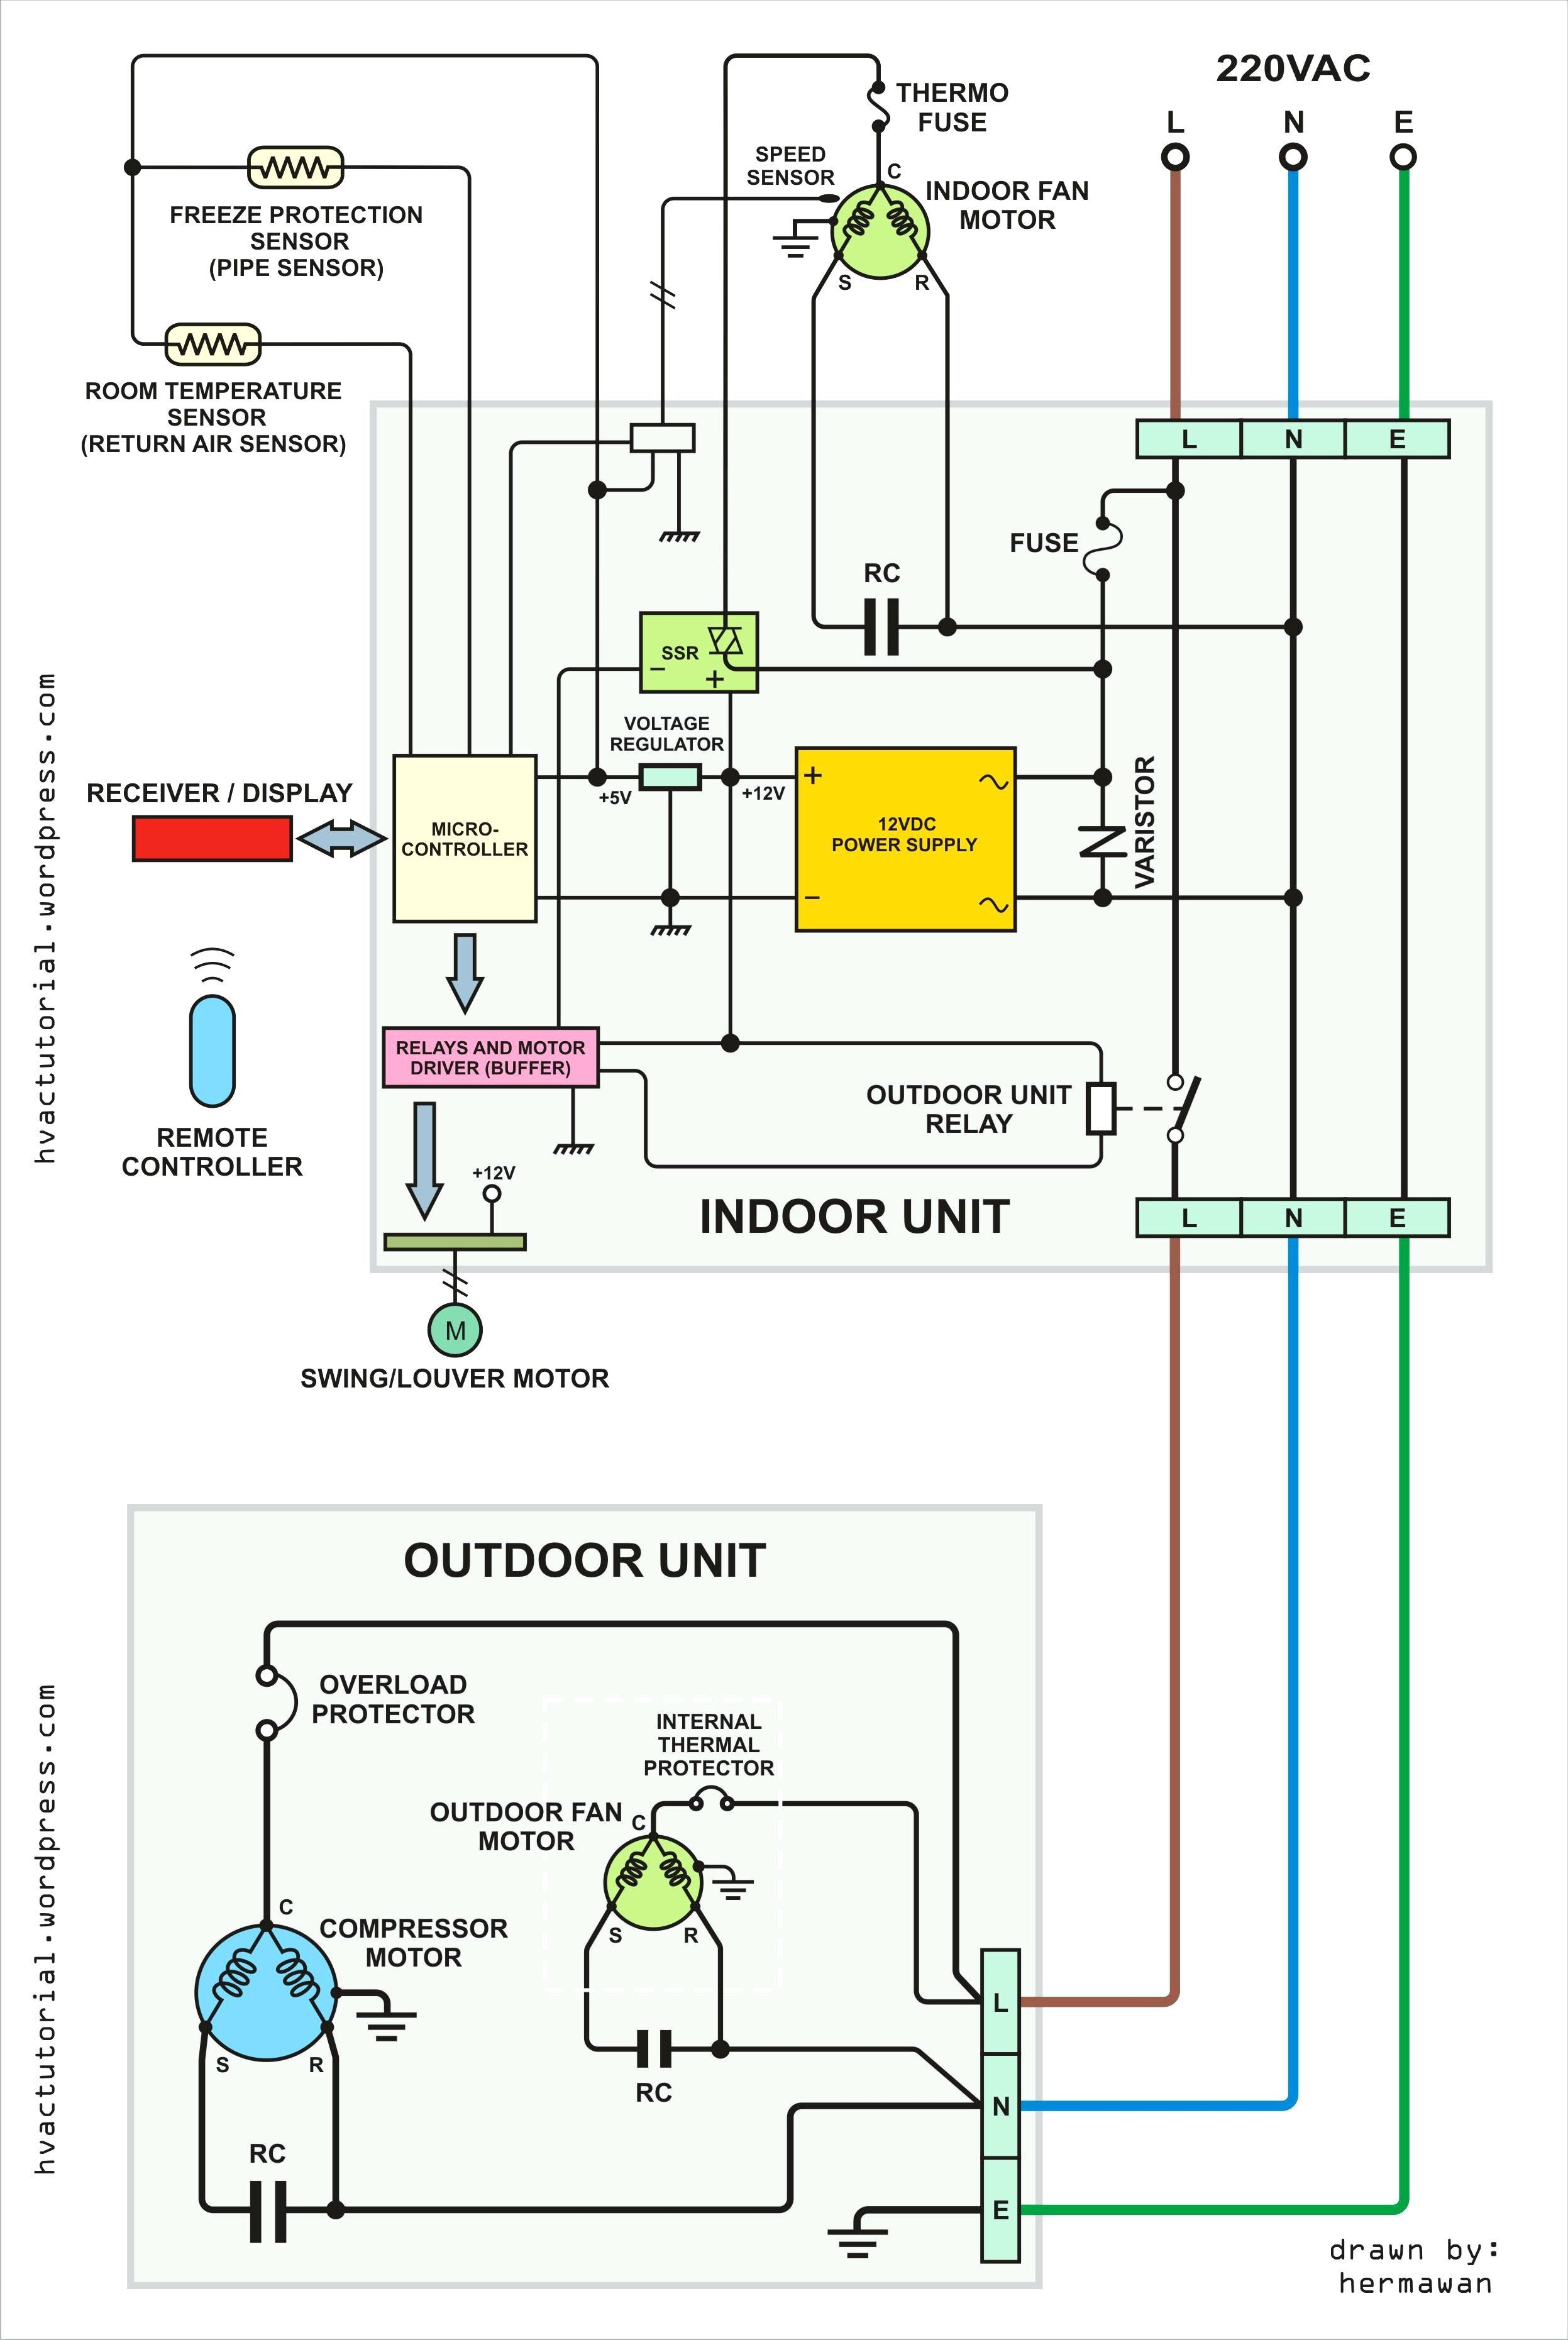 New Wiring Diagram For Solid Fuel Central Heating System Con